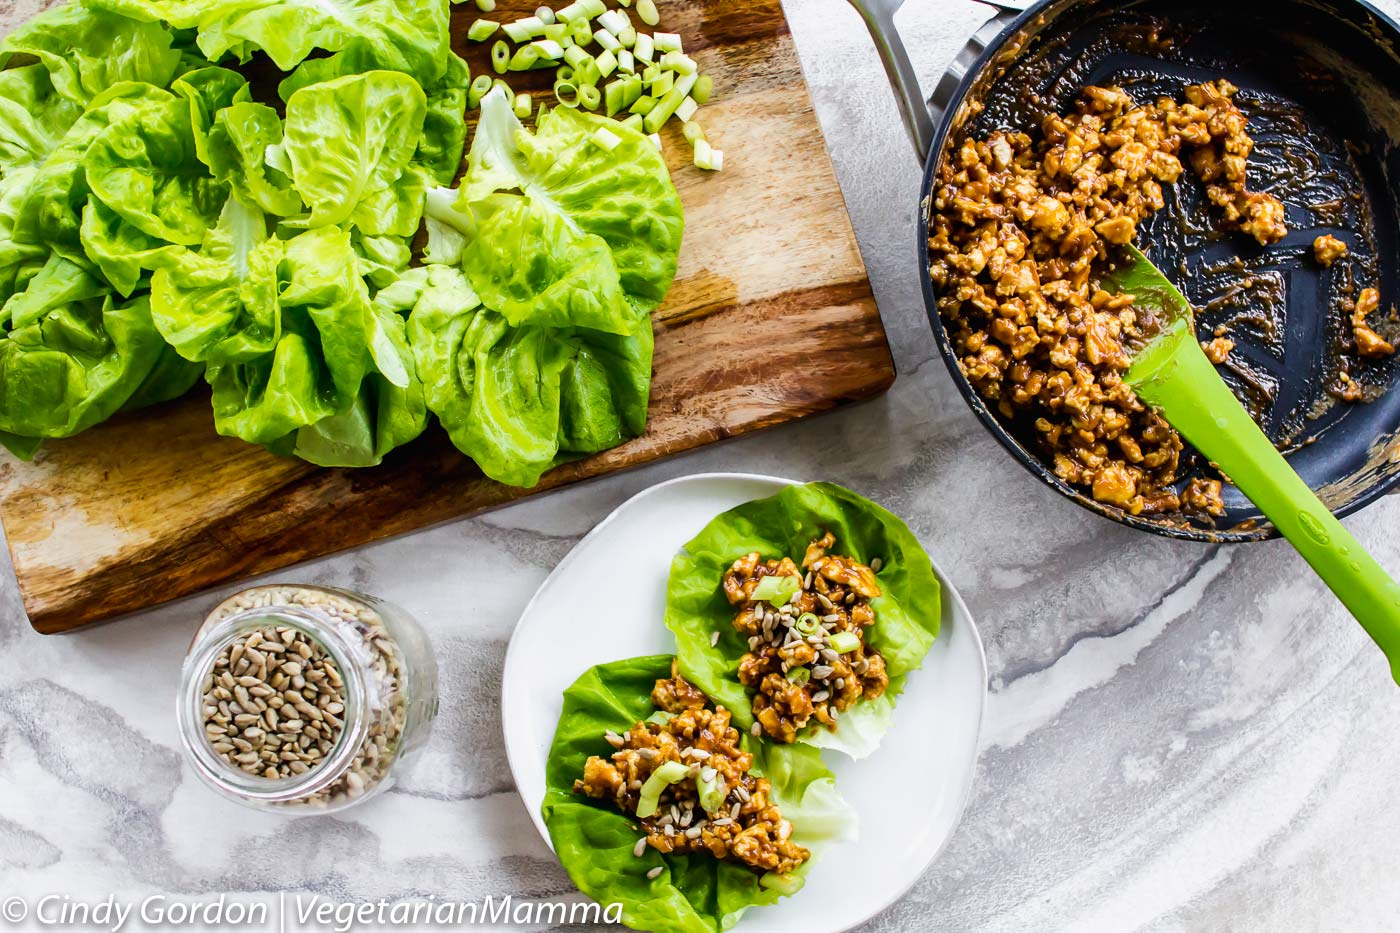 thai lettuce wraps, skilet of mixture and cutting board of ingredients